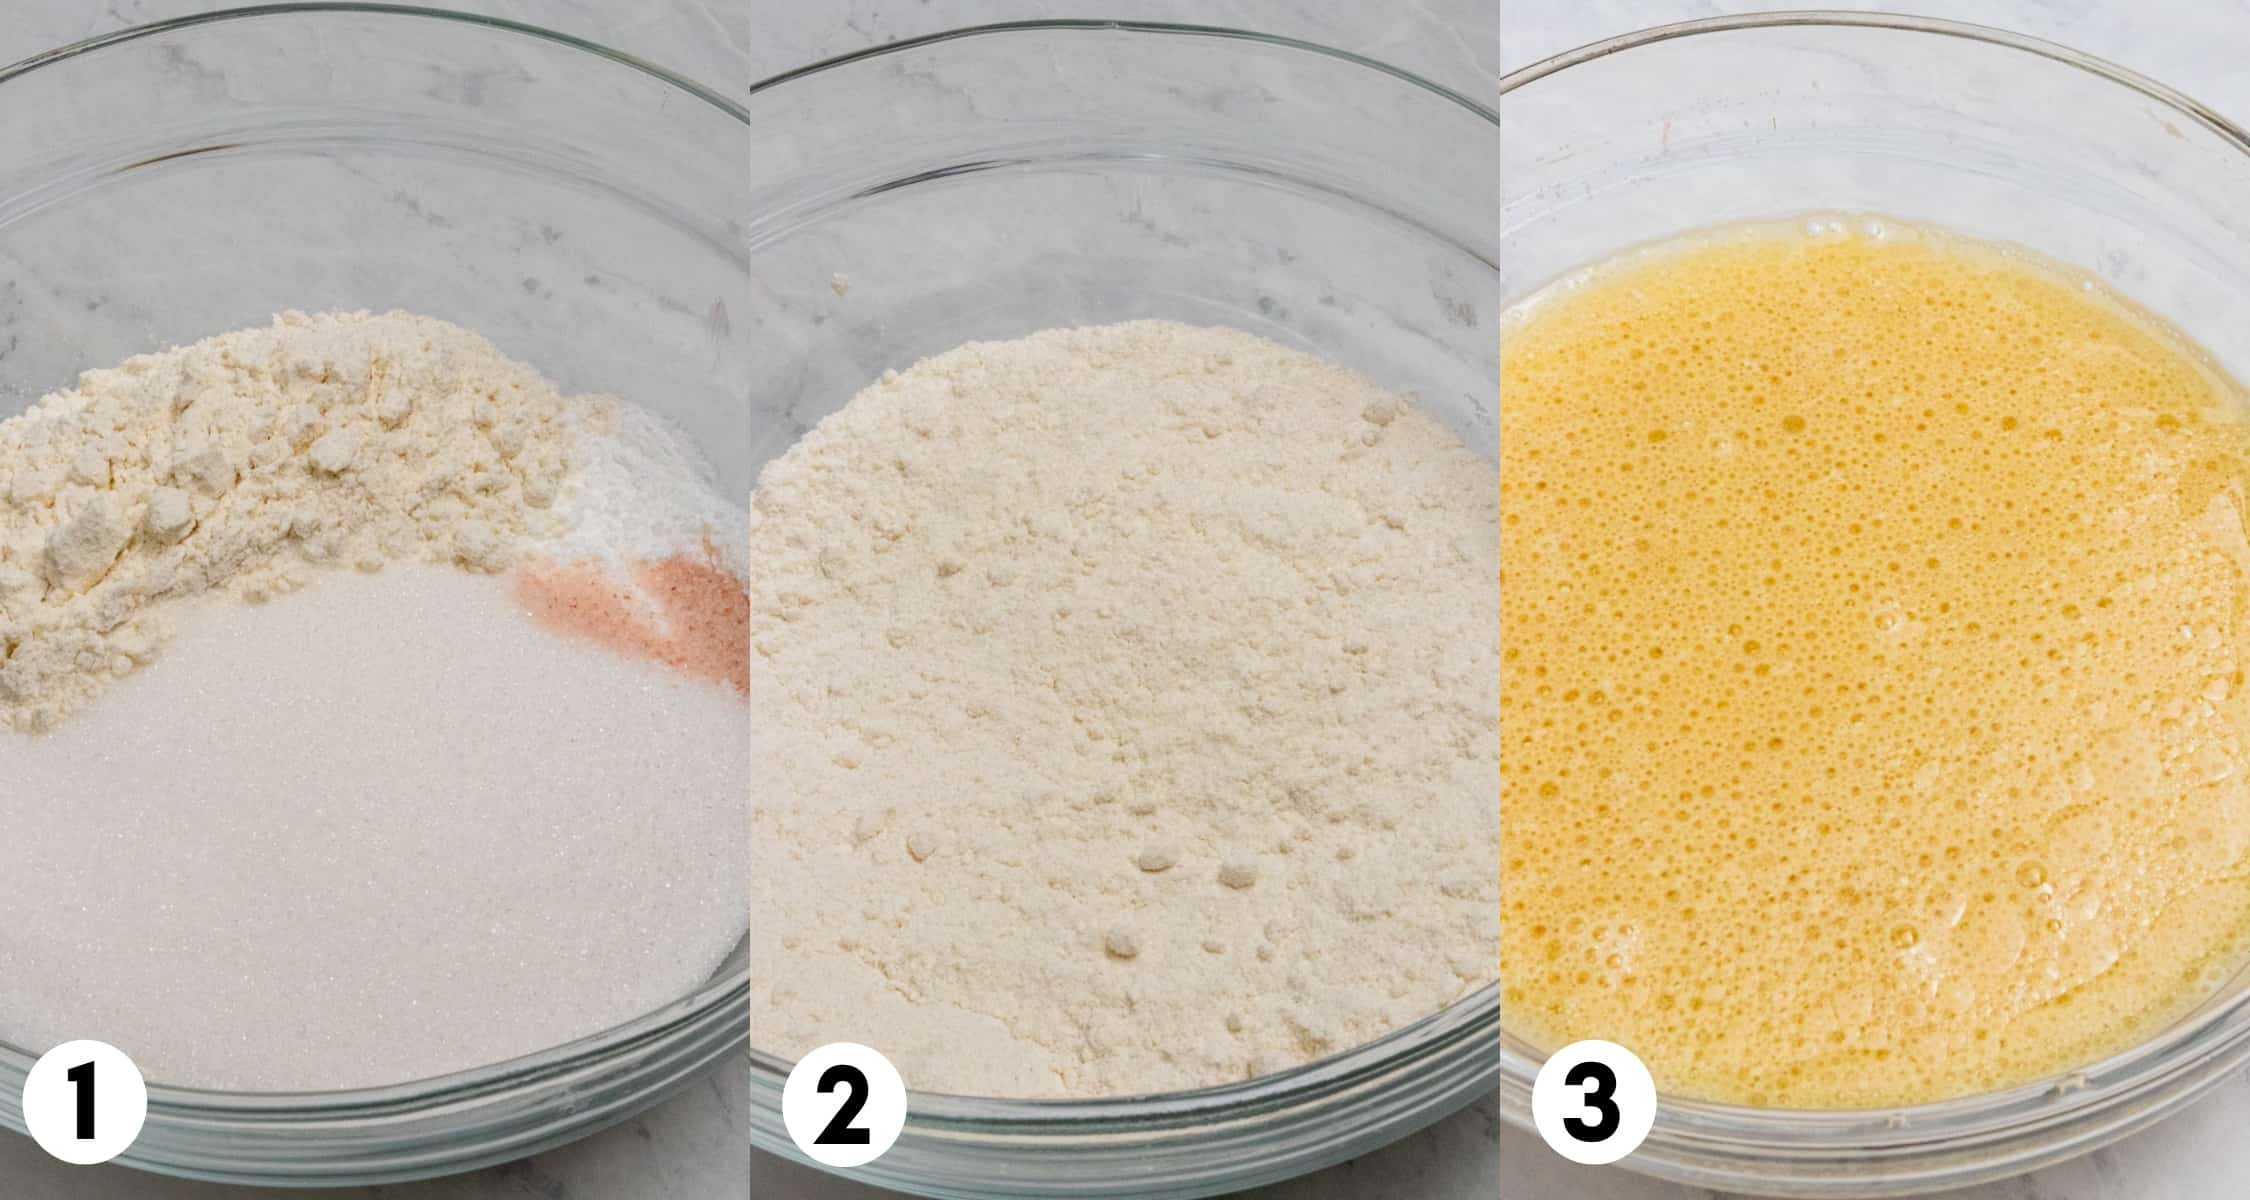 Flour and salt in mixing bowl and wet ingredients in a separate bowl.